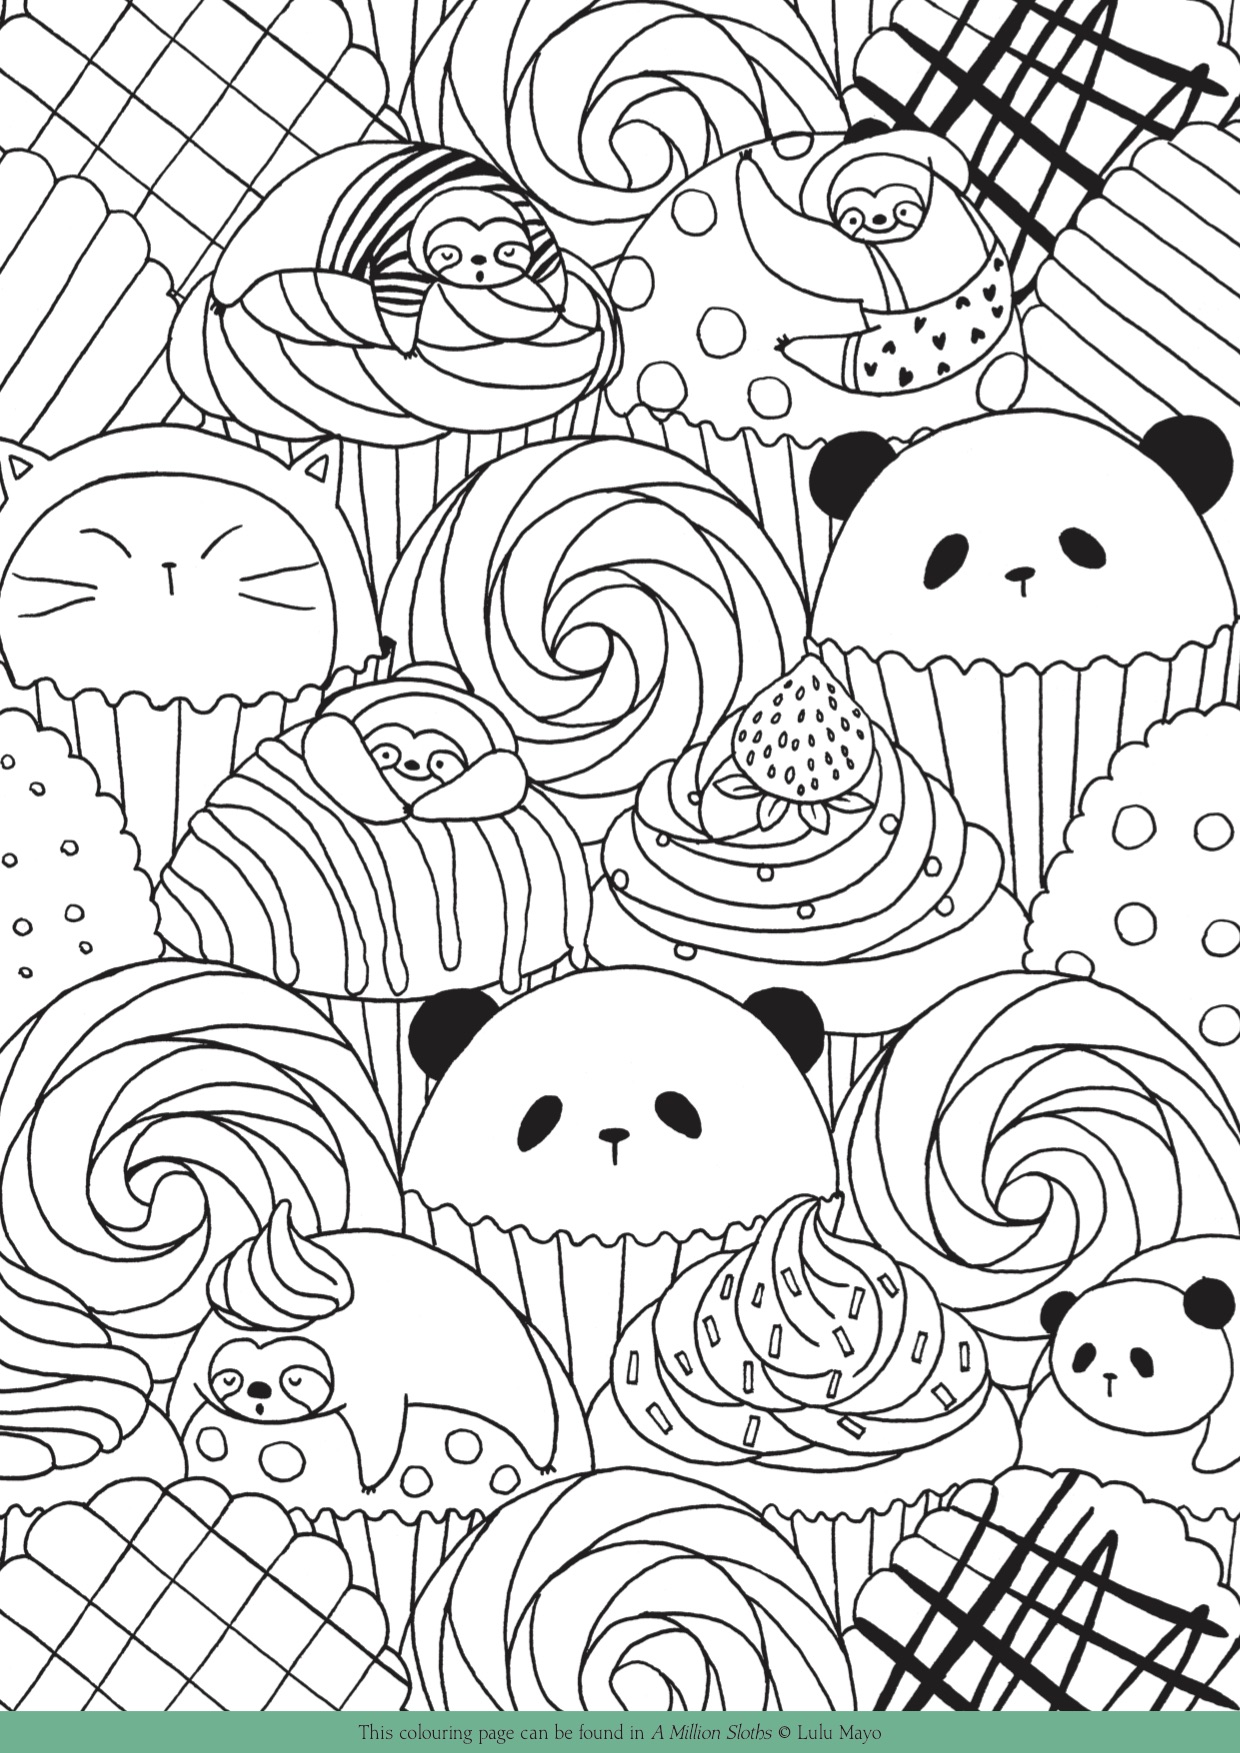 Free Downloadable Colouring Pages for Adults - Michael O ...